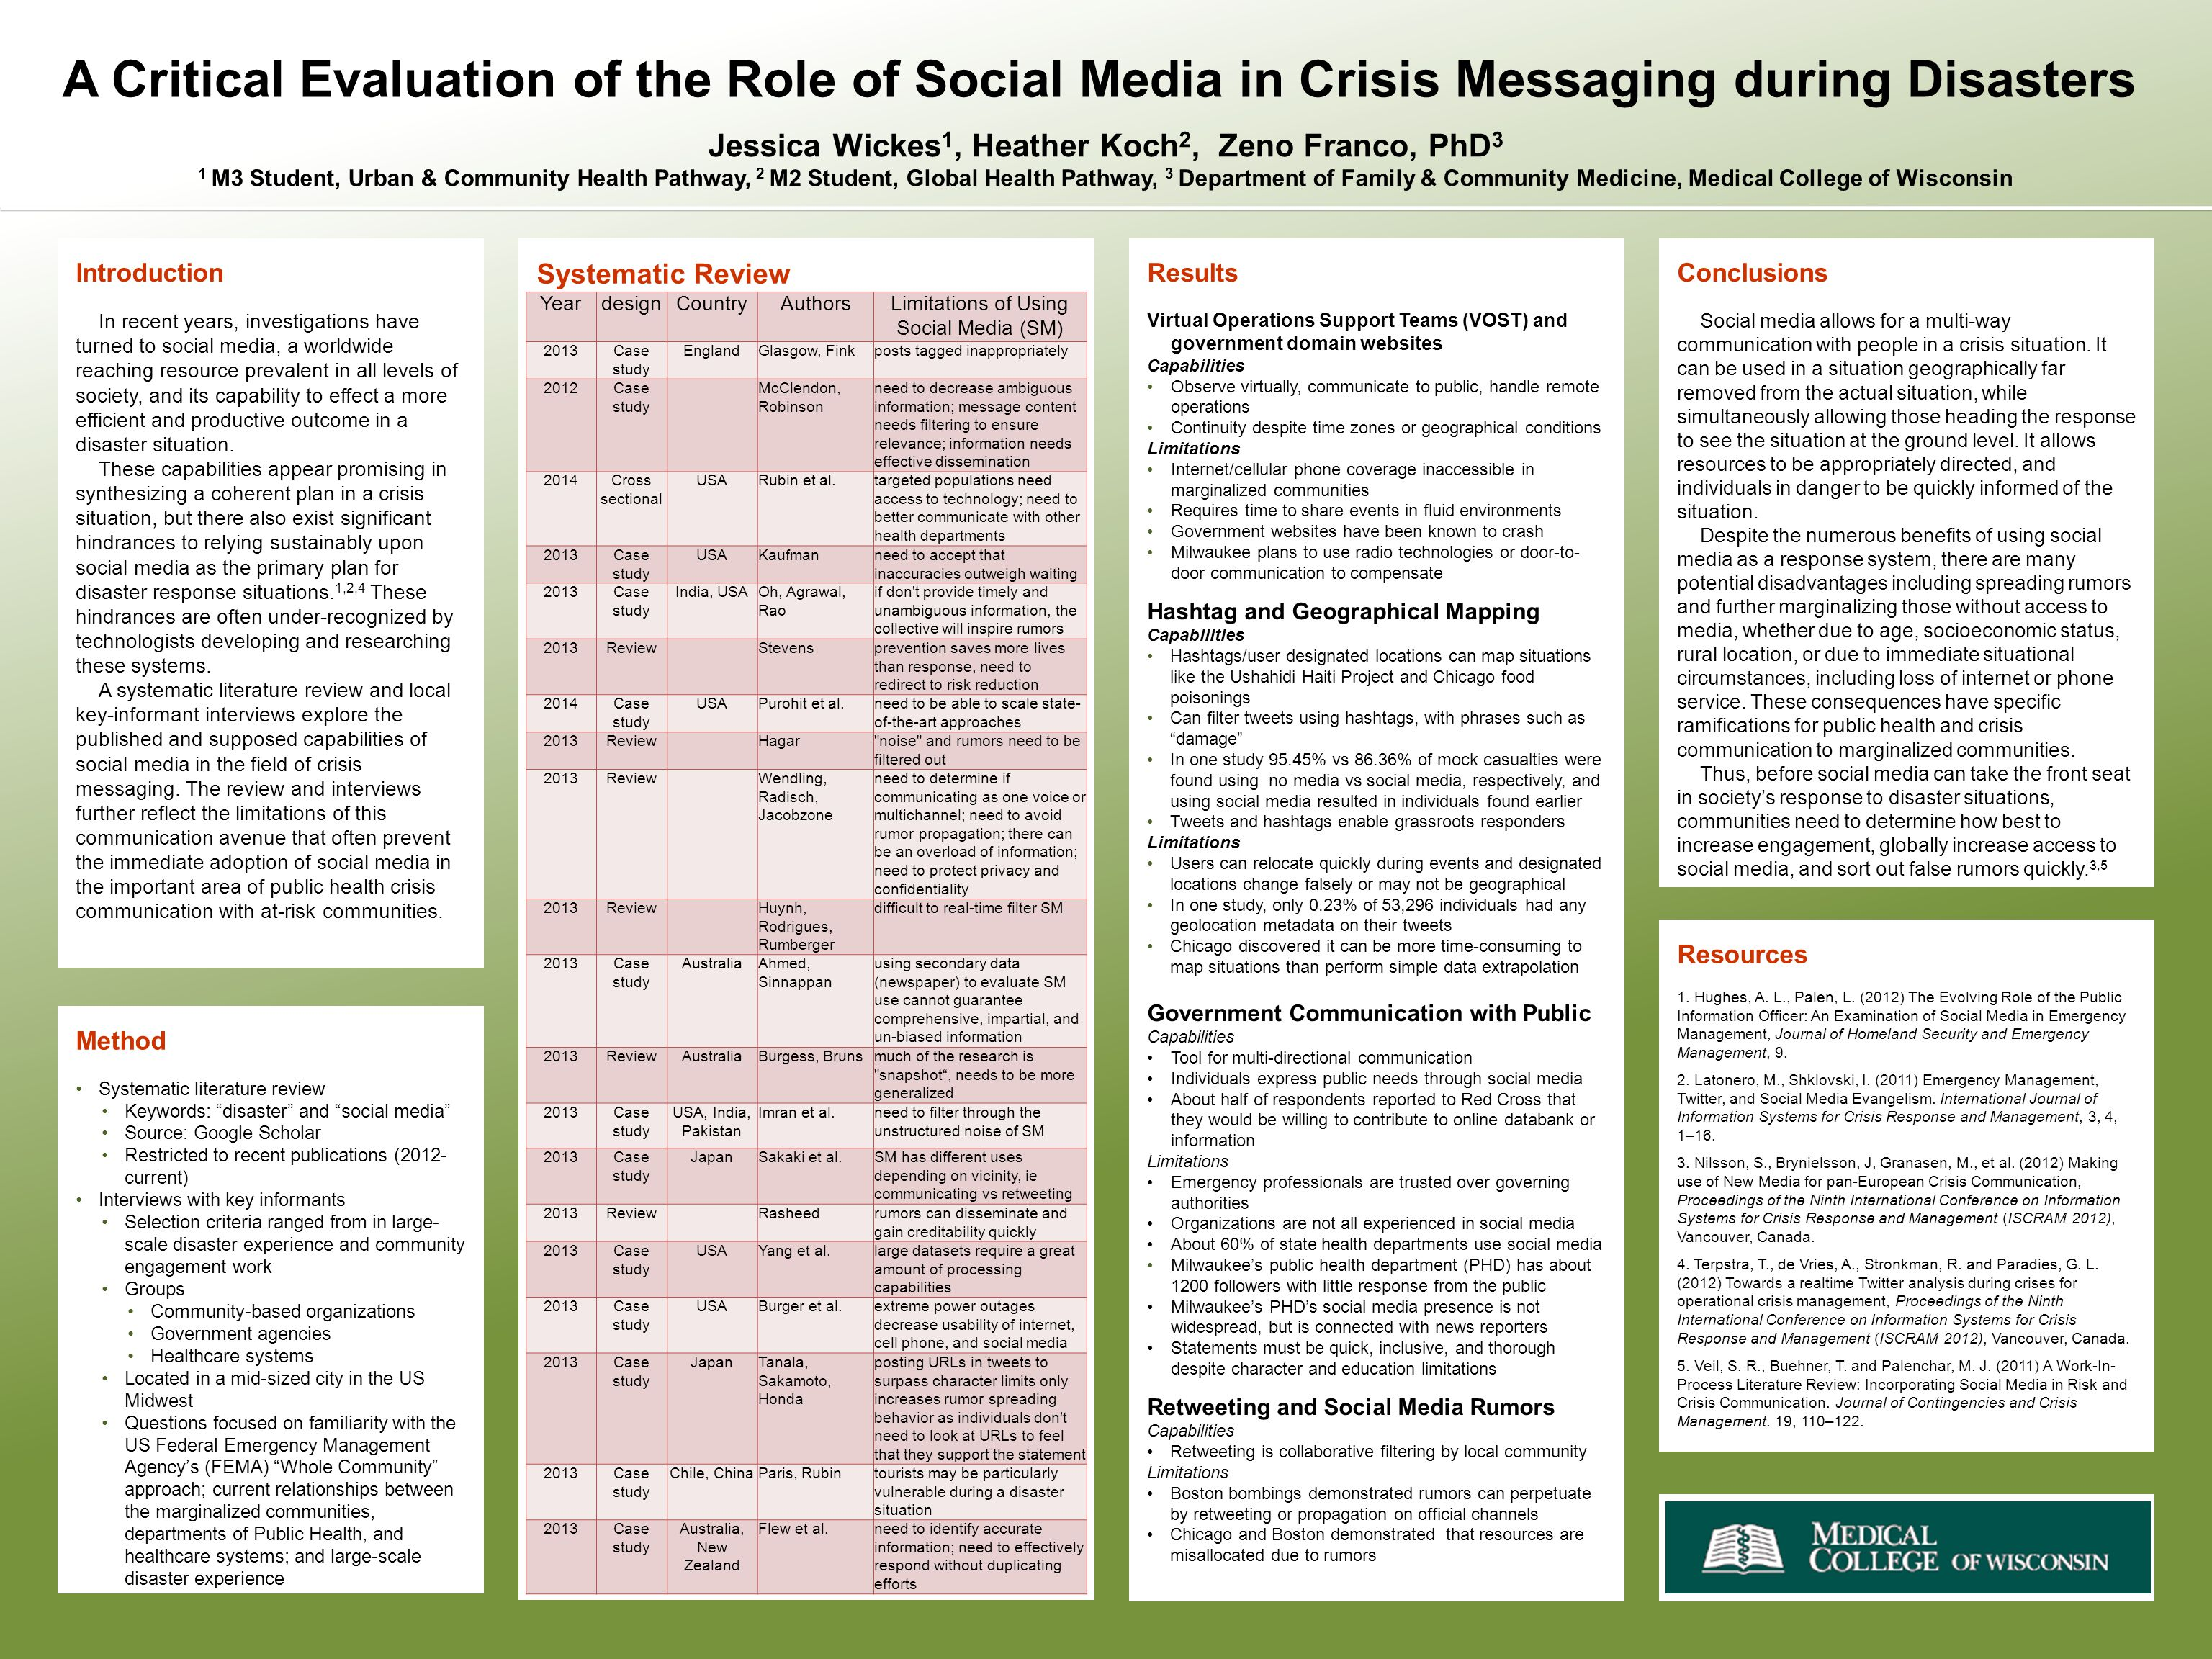 Jessica Wickes 1, Heather Koch 2, Zeno Franco, PhD 3 1 M3 Student, Urban & Community Health Pathway, 2 M2 Student, Global Health Pathway, 3 Department of Family & Community Medicine, Medical College of Wisconsin A Critical Evaluation of the Role of Social Media in Crisis Messaging during Disasters Resources 1.